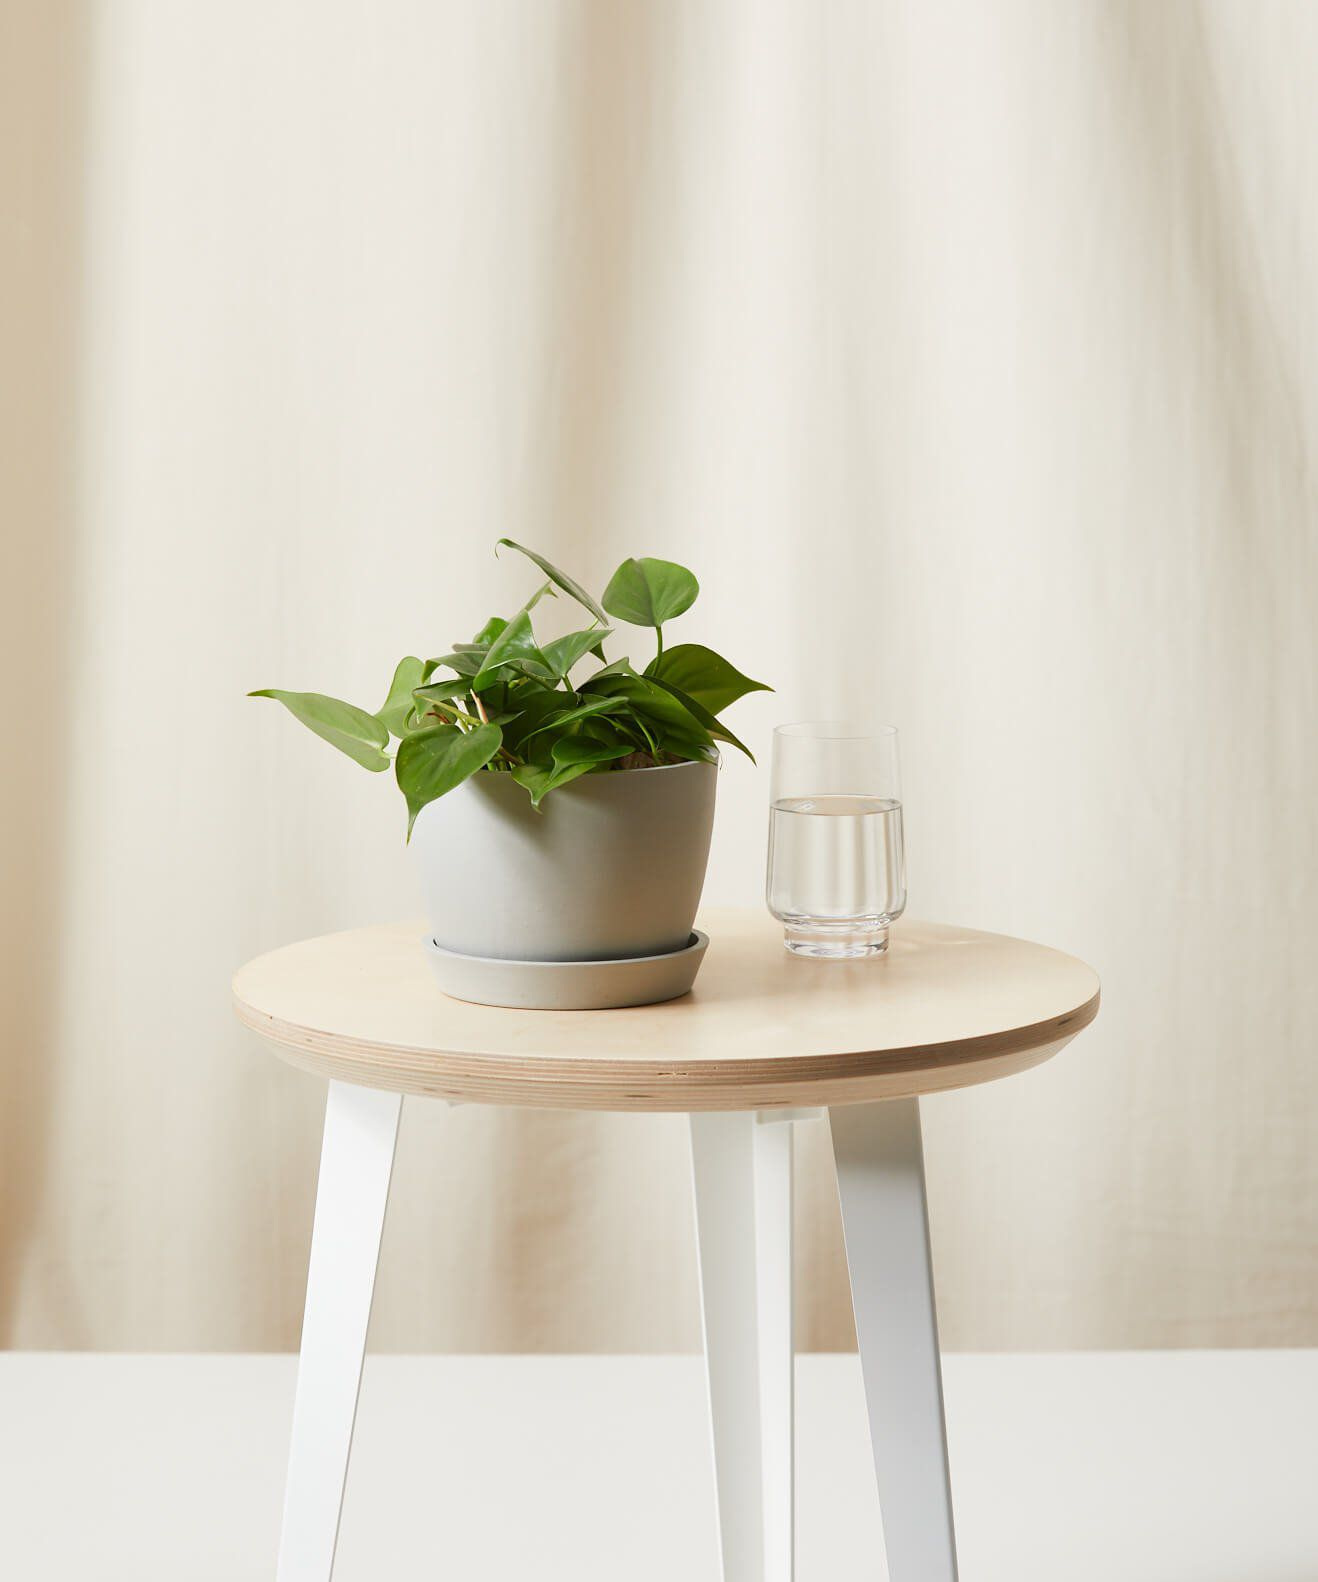 Potted heartleaf philodendron on a stool next to a glass of water